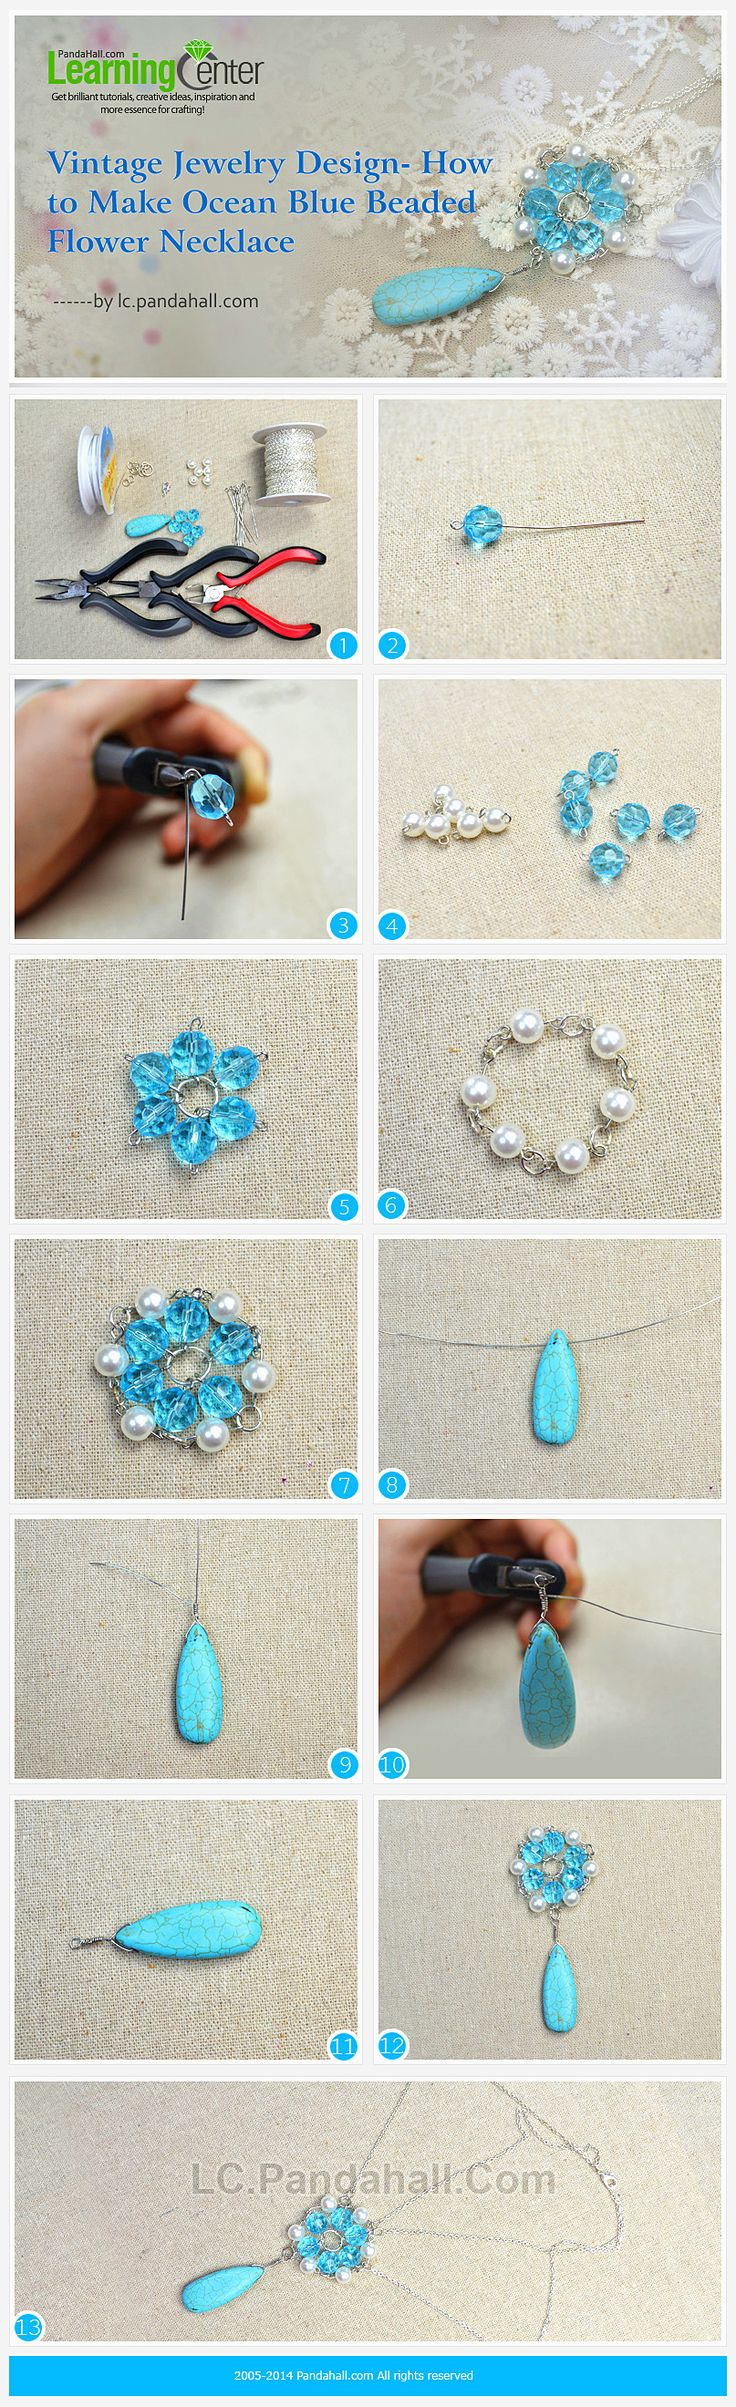 Vintage Jewelry Design- How to Make Ocean Blue Beaded Flower Necklace